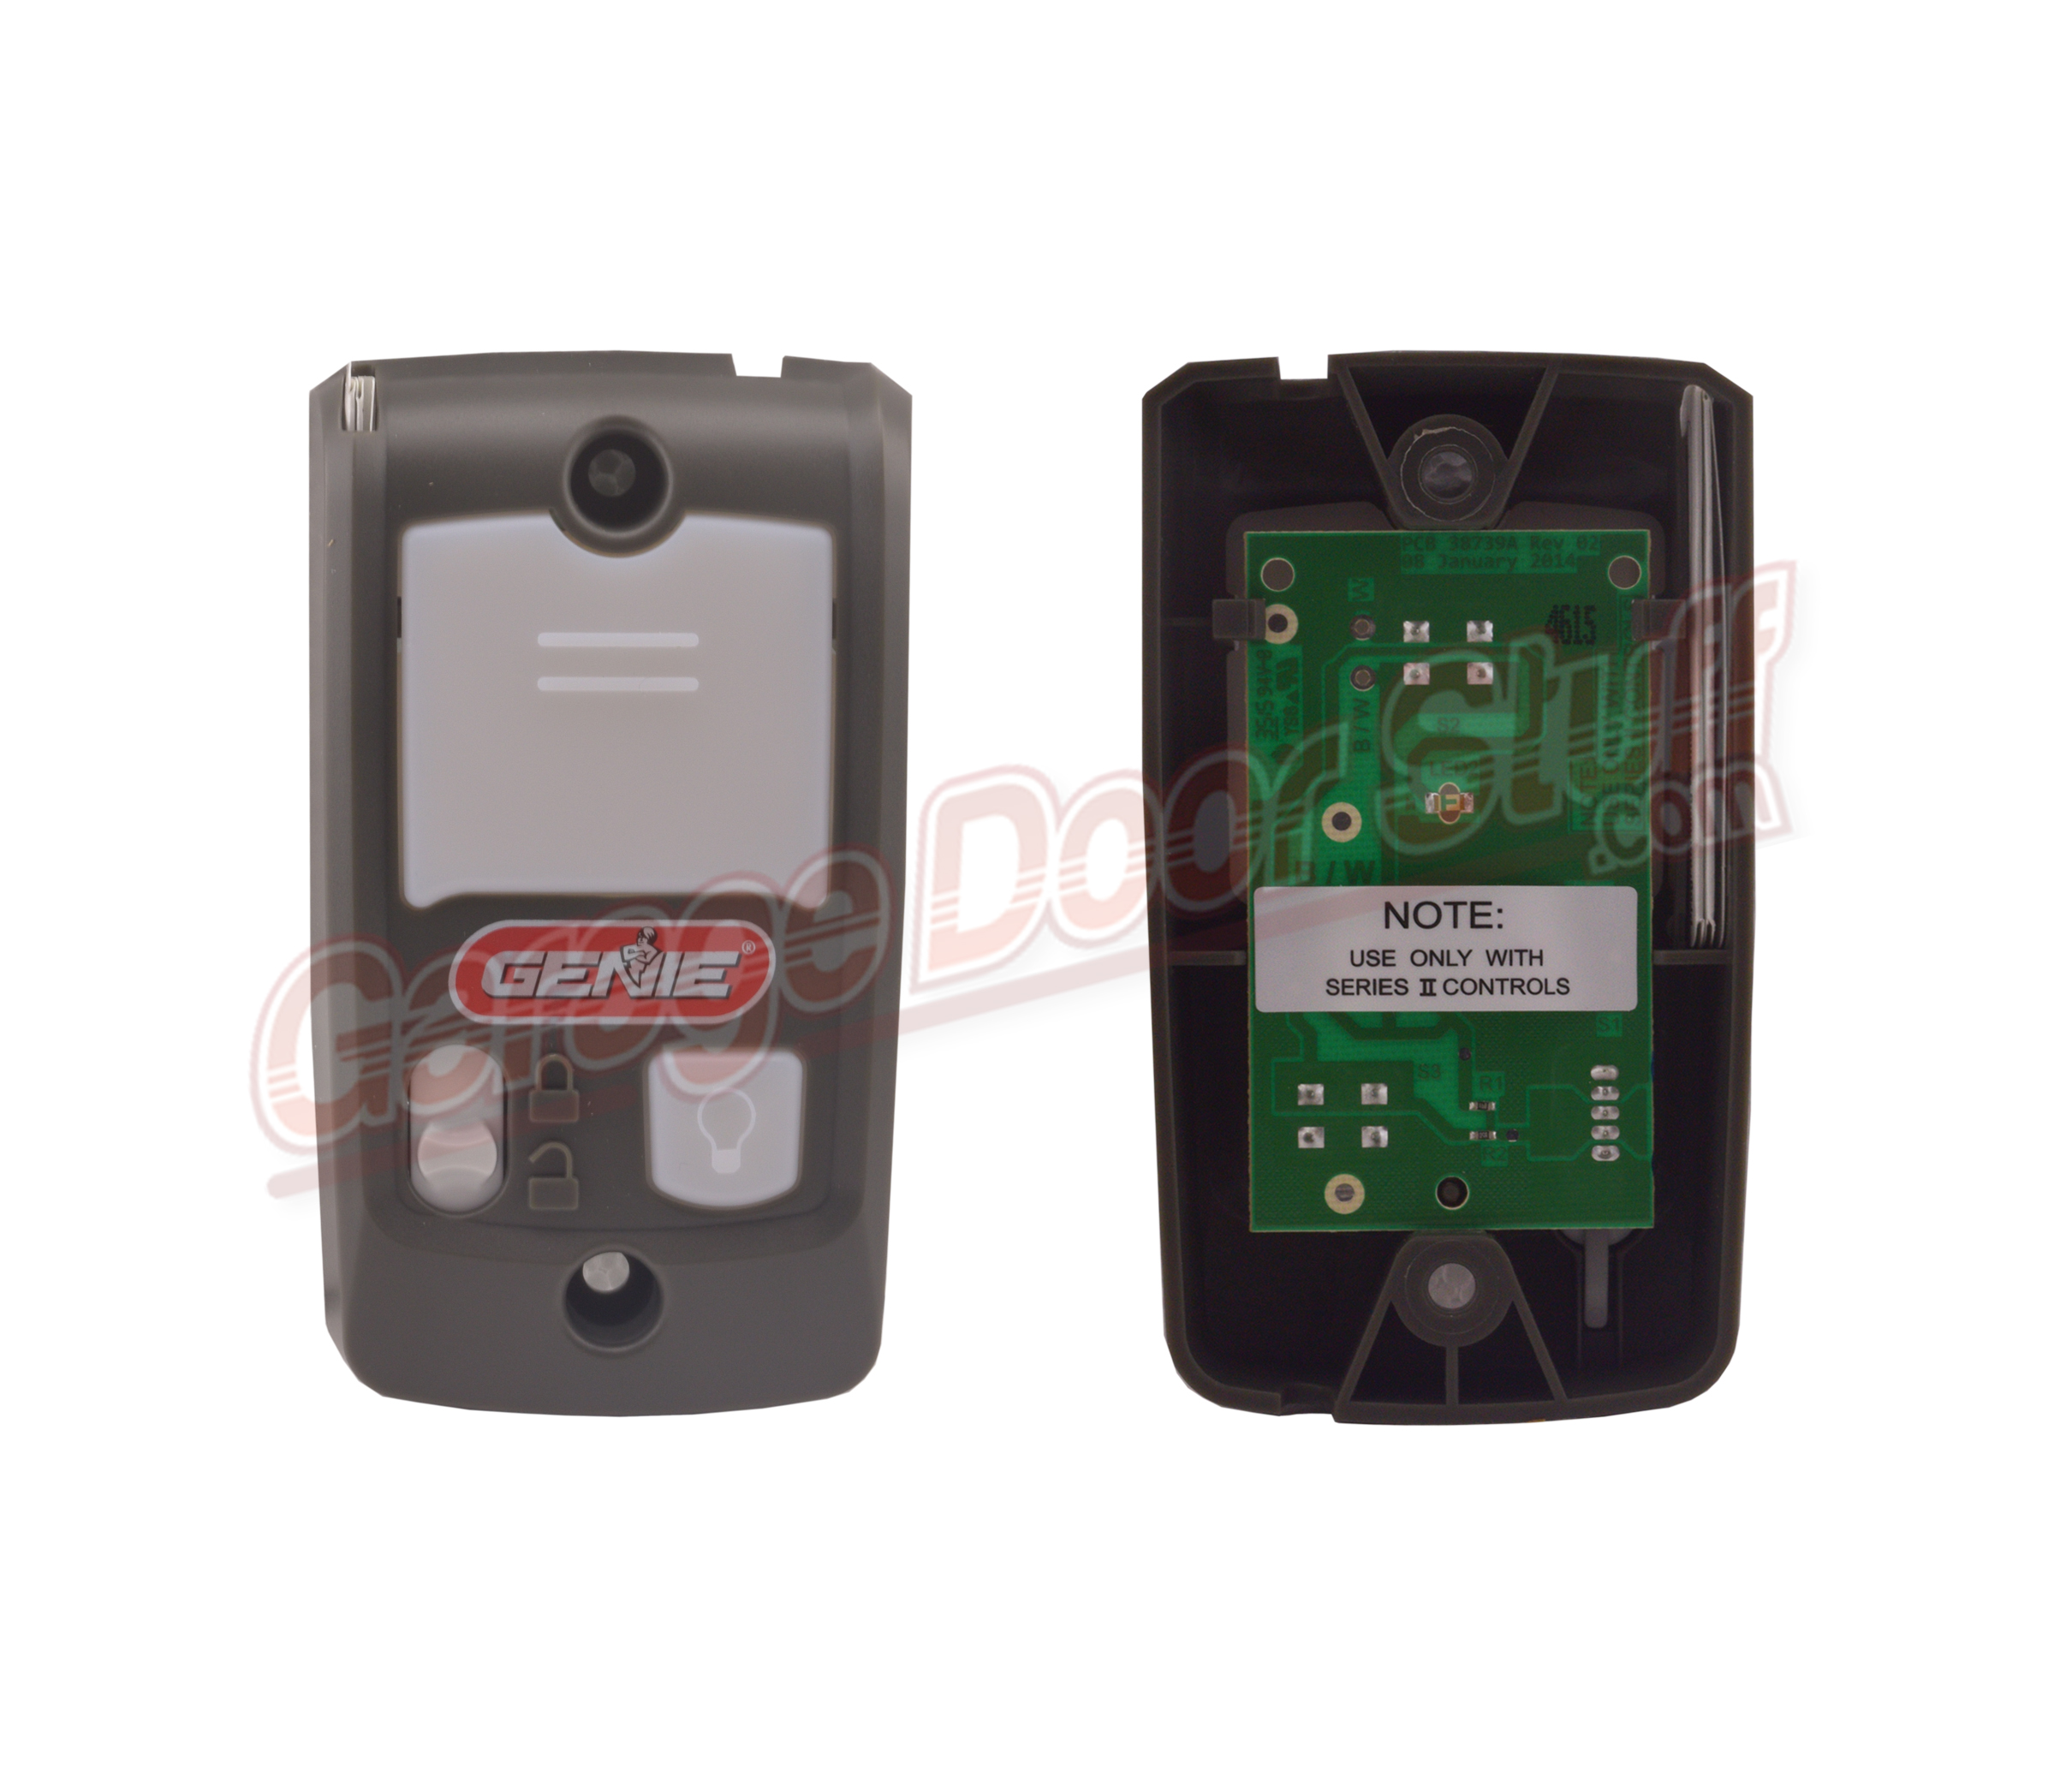 openers up adcc door view remote motor master genie button for dp garage to larger controlling